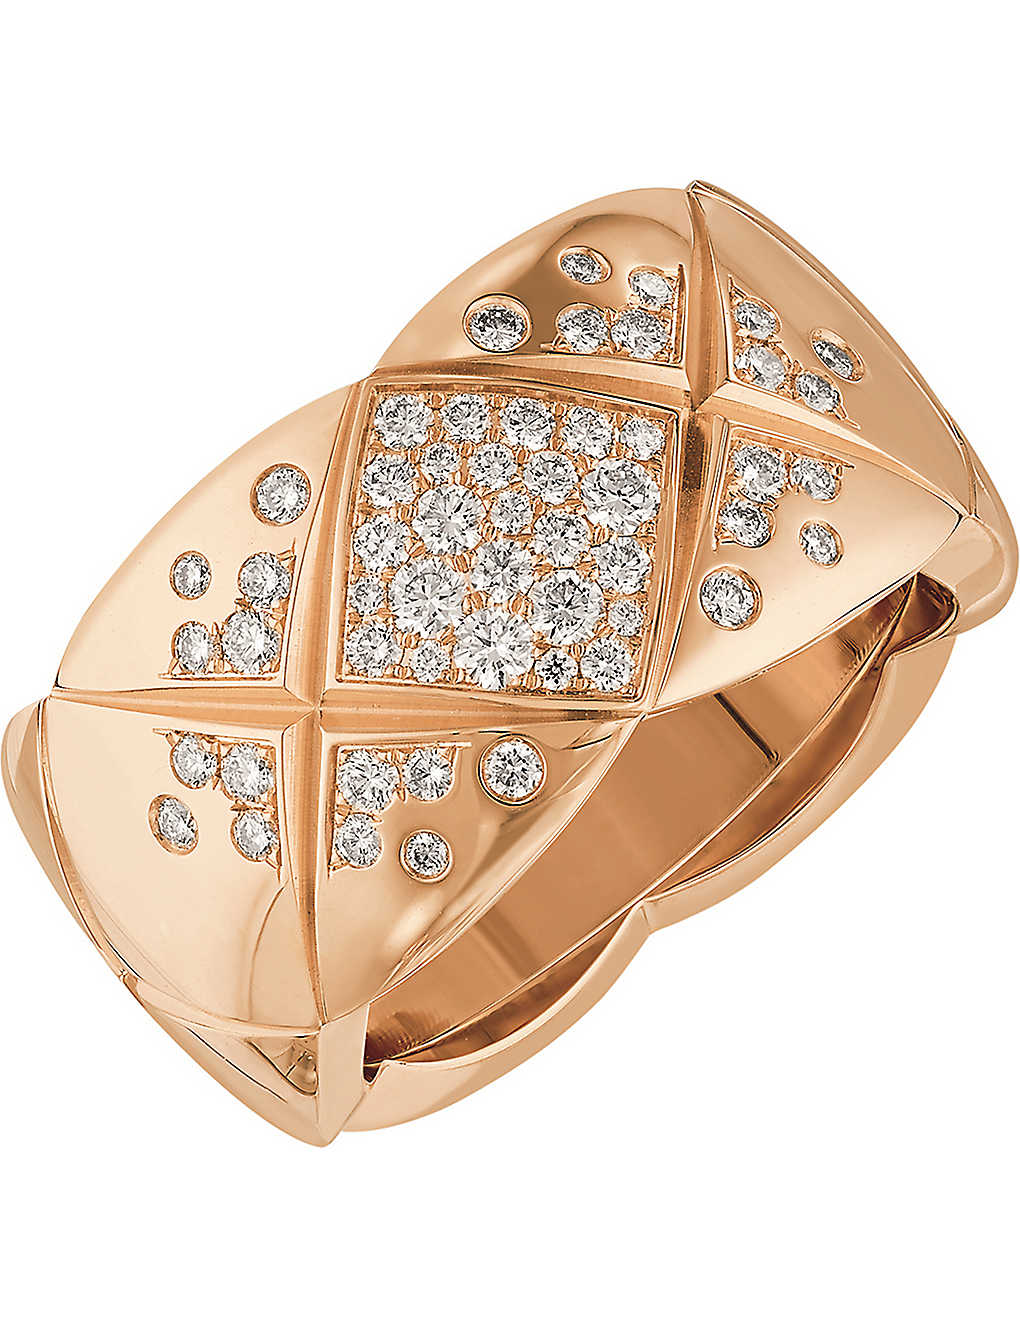 d7492d85c6076c CHANEL - Coco Crush 18K beige gold and diamond ring. Medium version ...